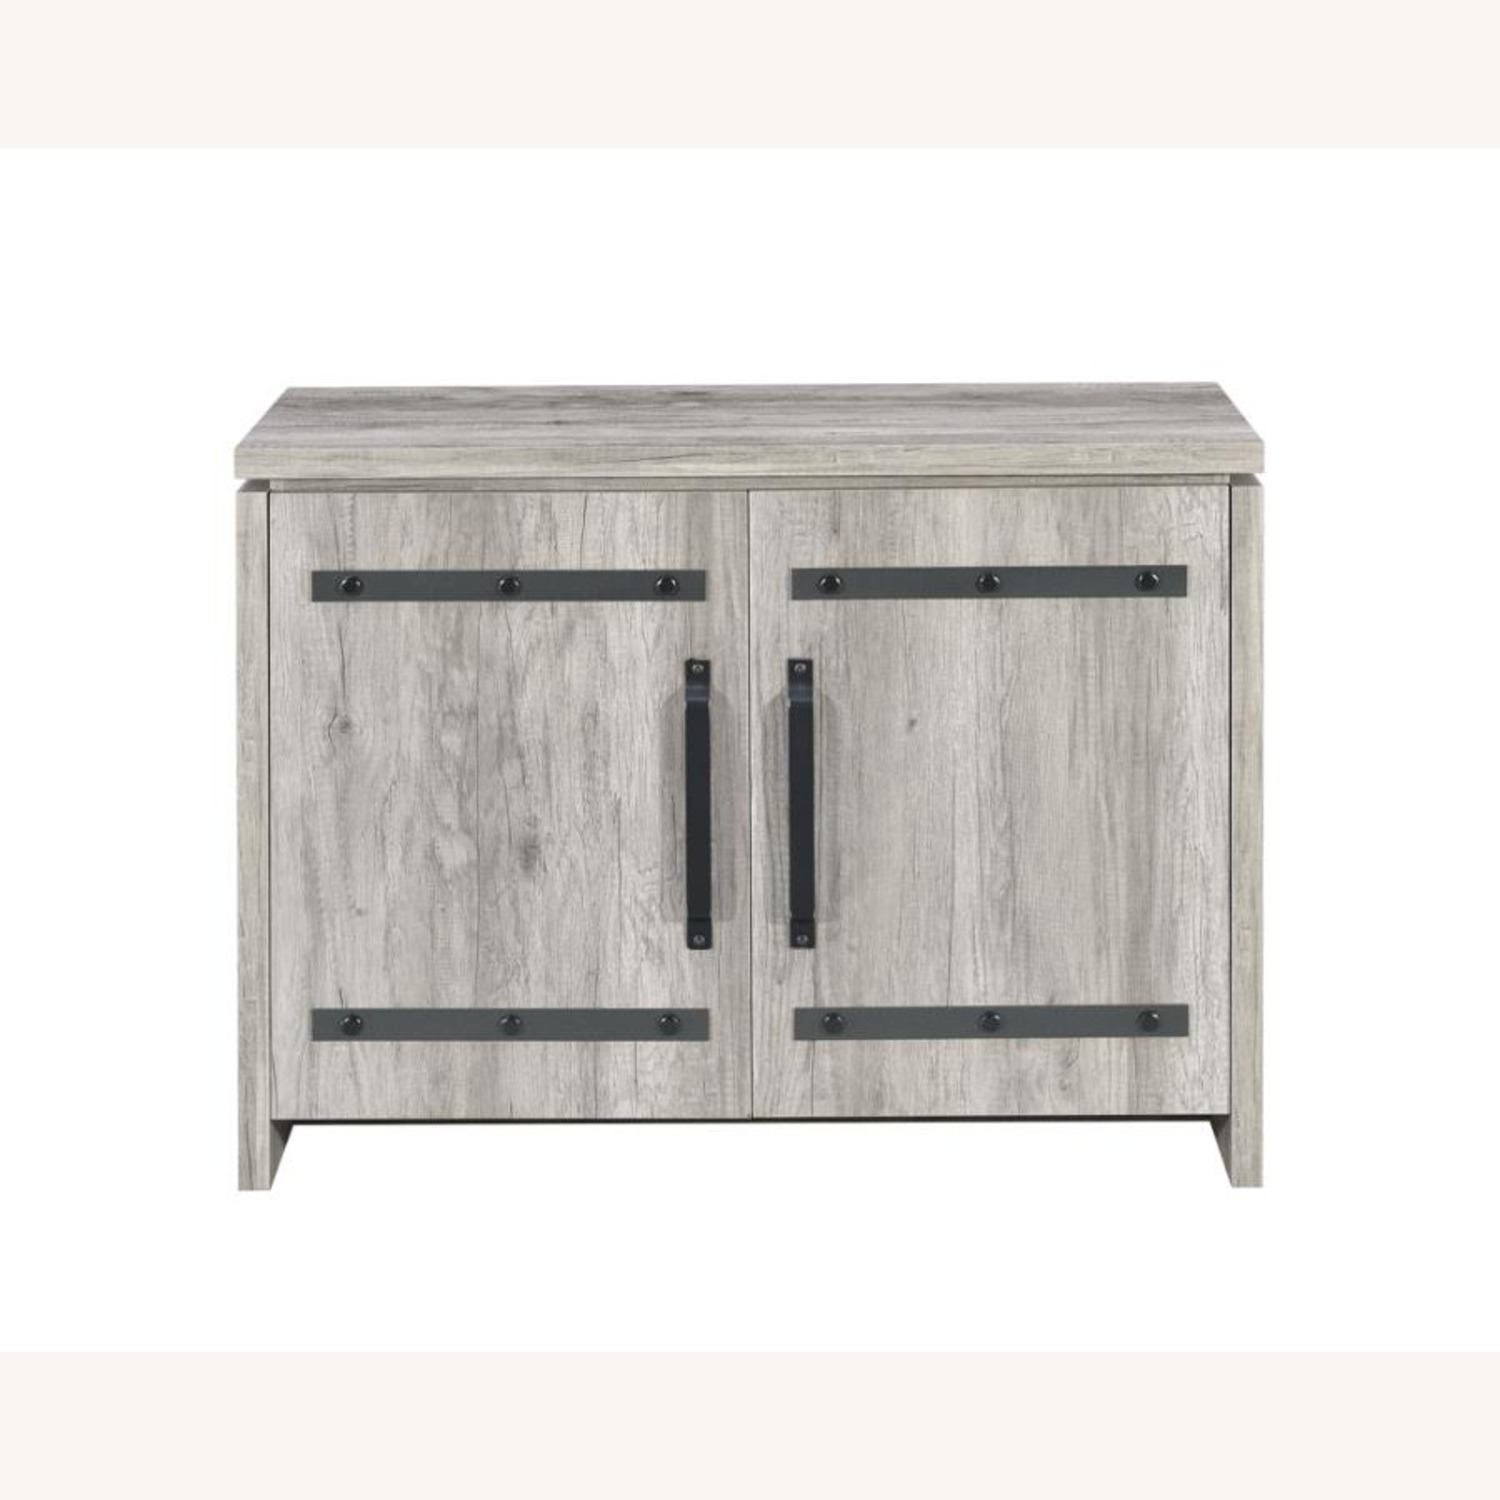 Accent Cabinet In Grey Driftwood Finish - image-2